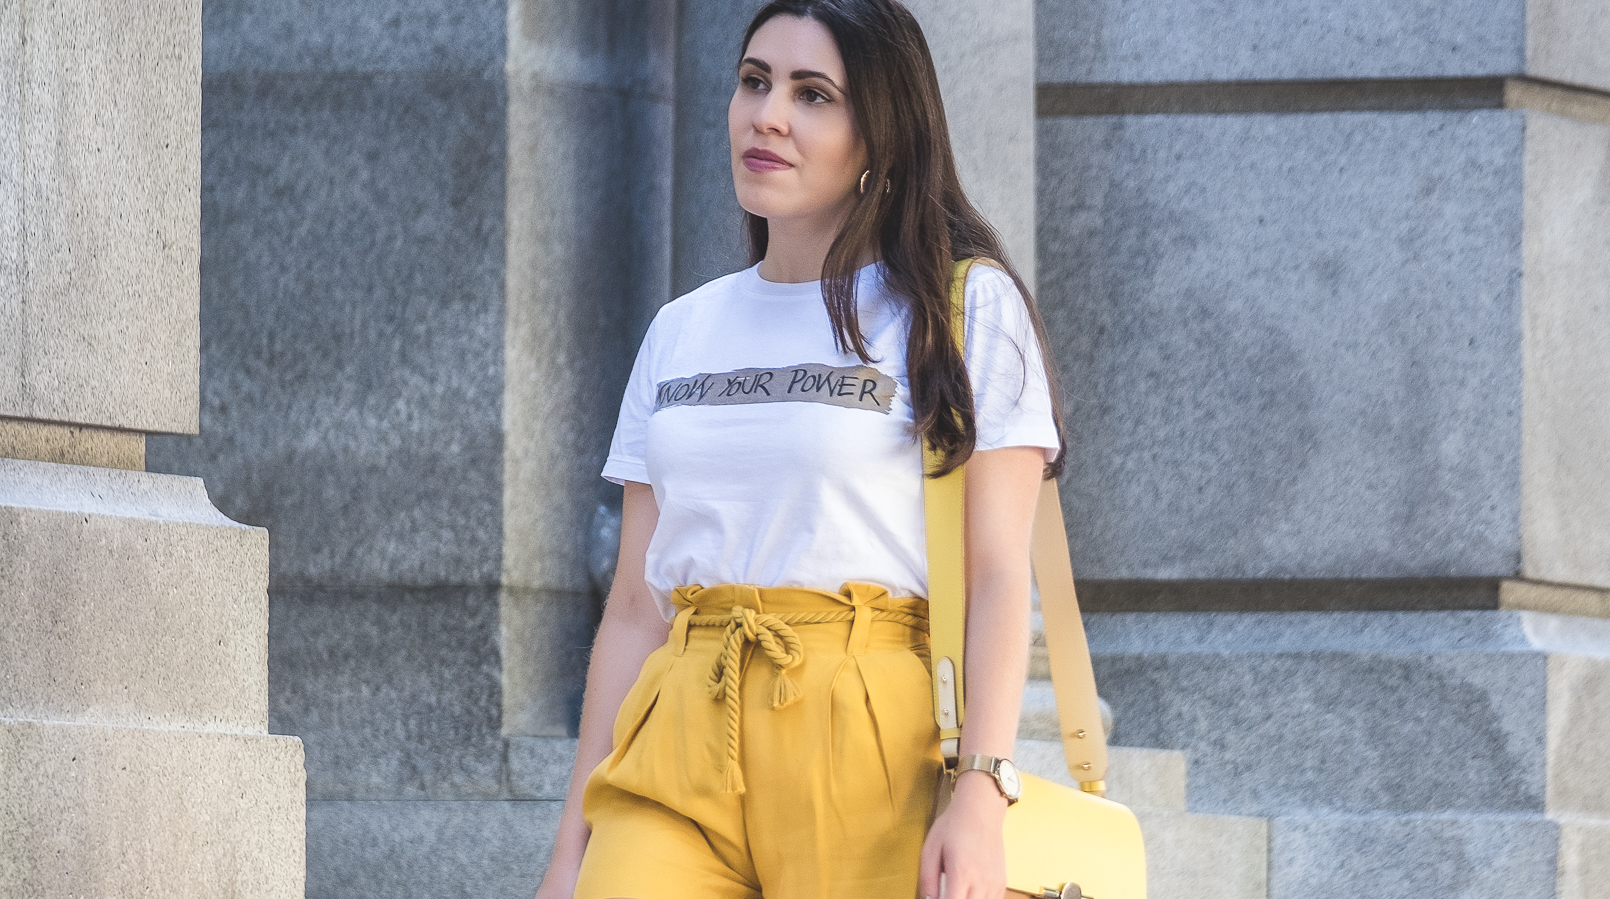 Le Fashionaire t shirt branca frase know your power stradivarius calcoes amarelo azeite fluorescente cinto corda mango mala amarela castanha pele massimo dutti 5452F PT t shirt branca frase know your power stradivarius calcoes amarelo azeite fluorescente cinto corda mango mala amarela castanha pele massimo dutti 5452F PT